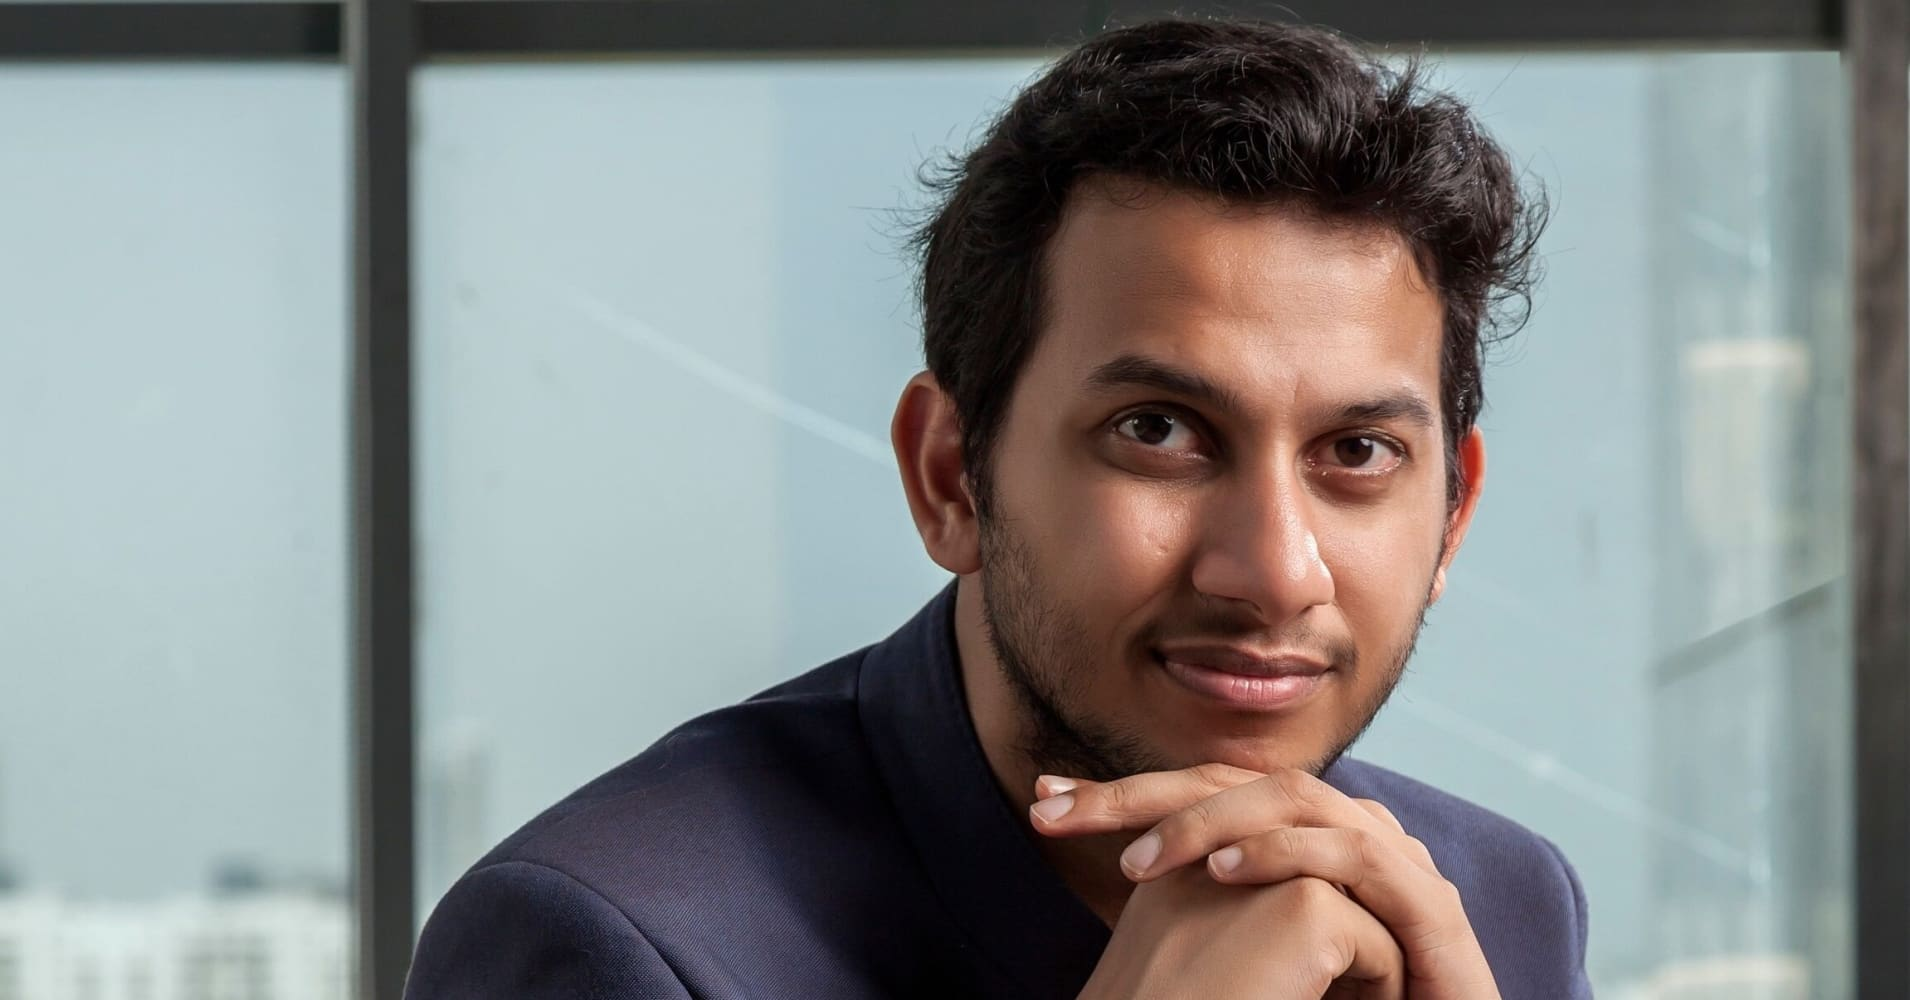 Ritesh Agarwal, founder and CEO of OYO